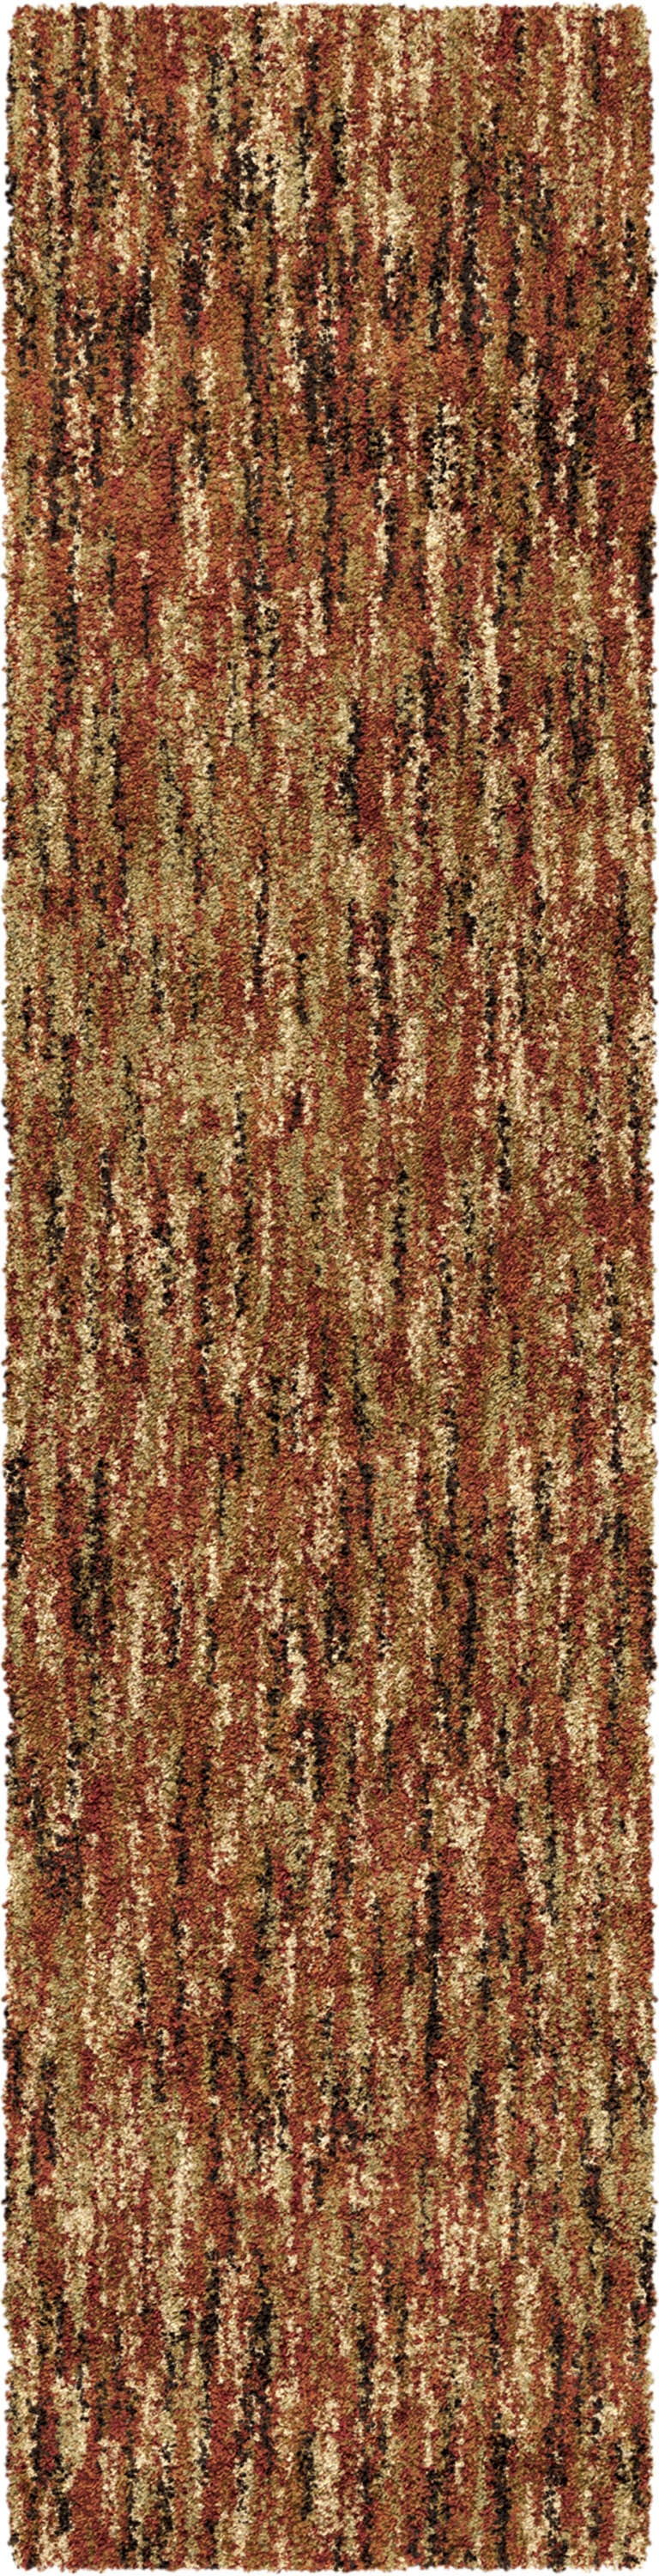 "Palmetto Living Next Generation Multi solid Red Area Rug - 7'10"" x 10'10"""